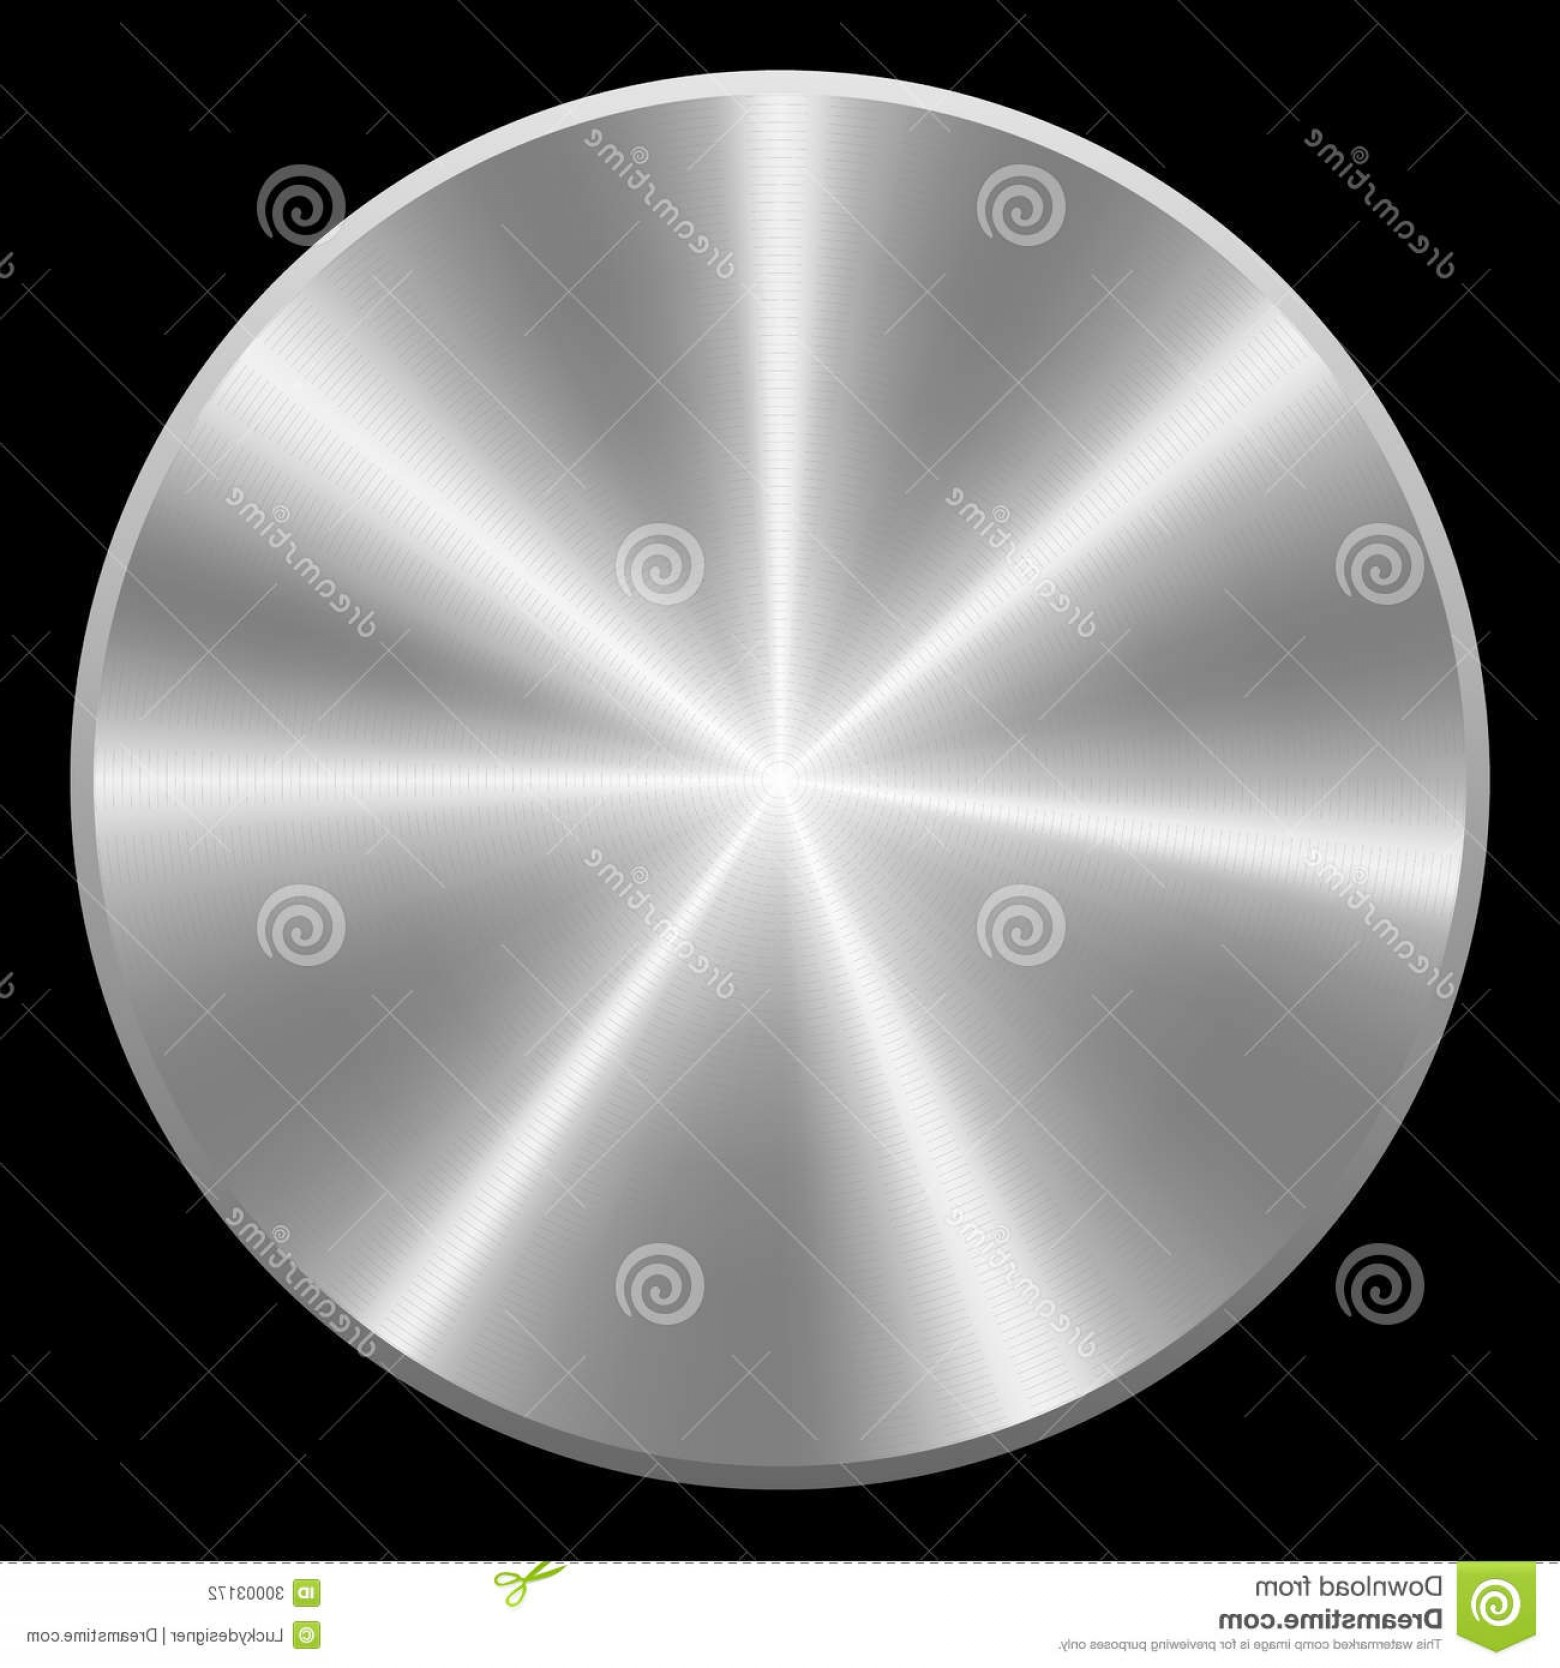 Metal Button Vector: Stock Photography Realistic Brushed Metal Button Vector Illustration Isolated Image